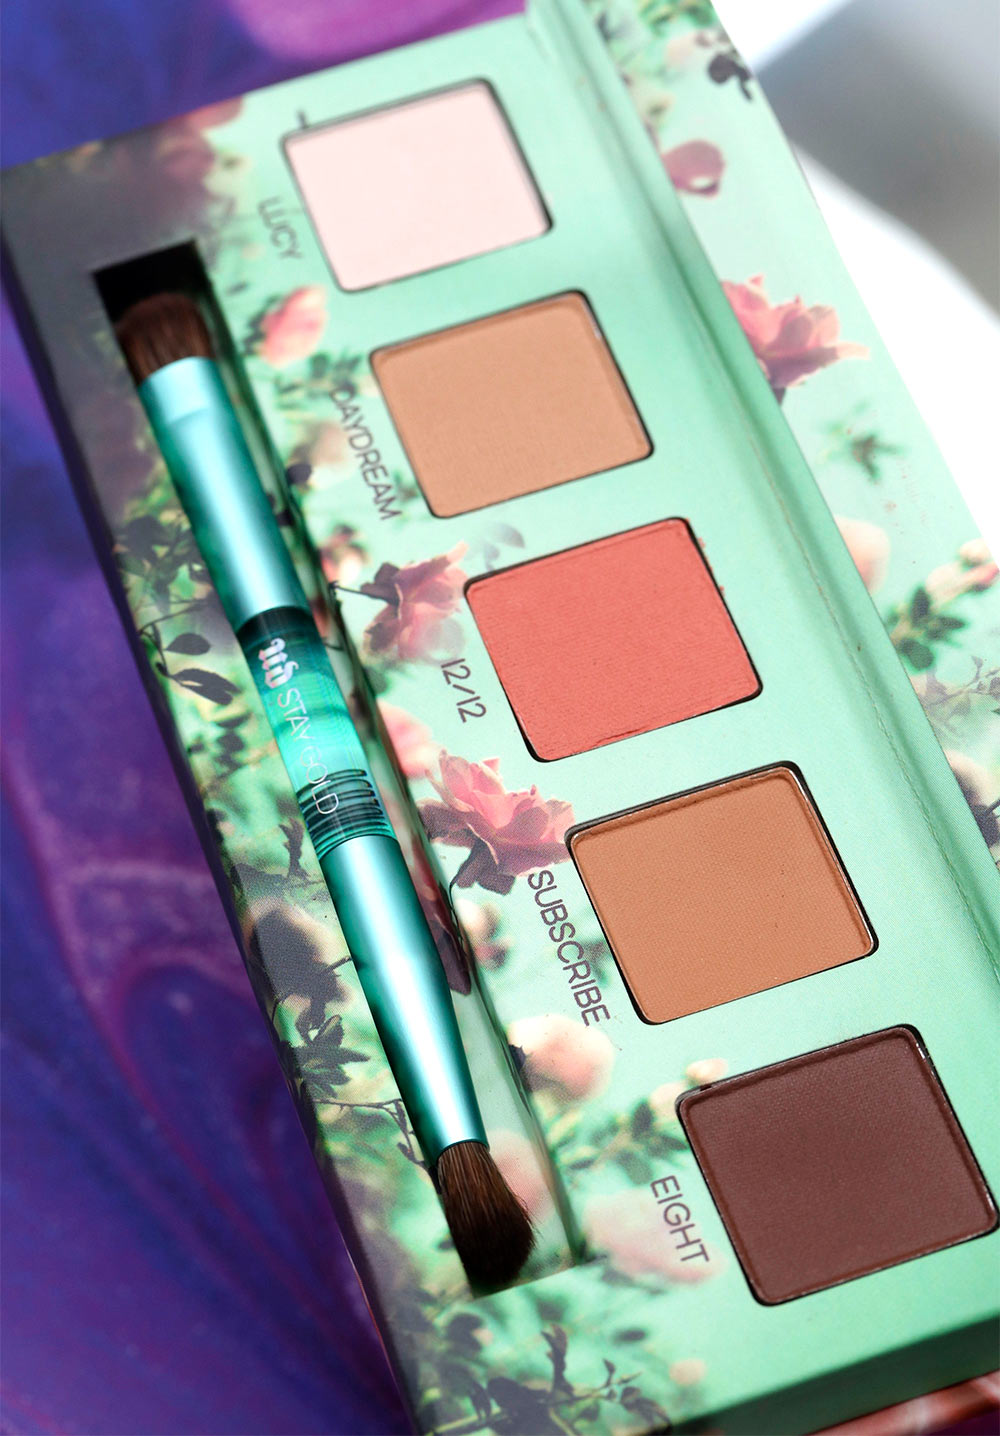 The Urban Decay X Kristen Leanne Collection Daydream